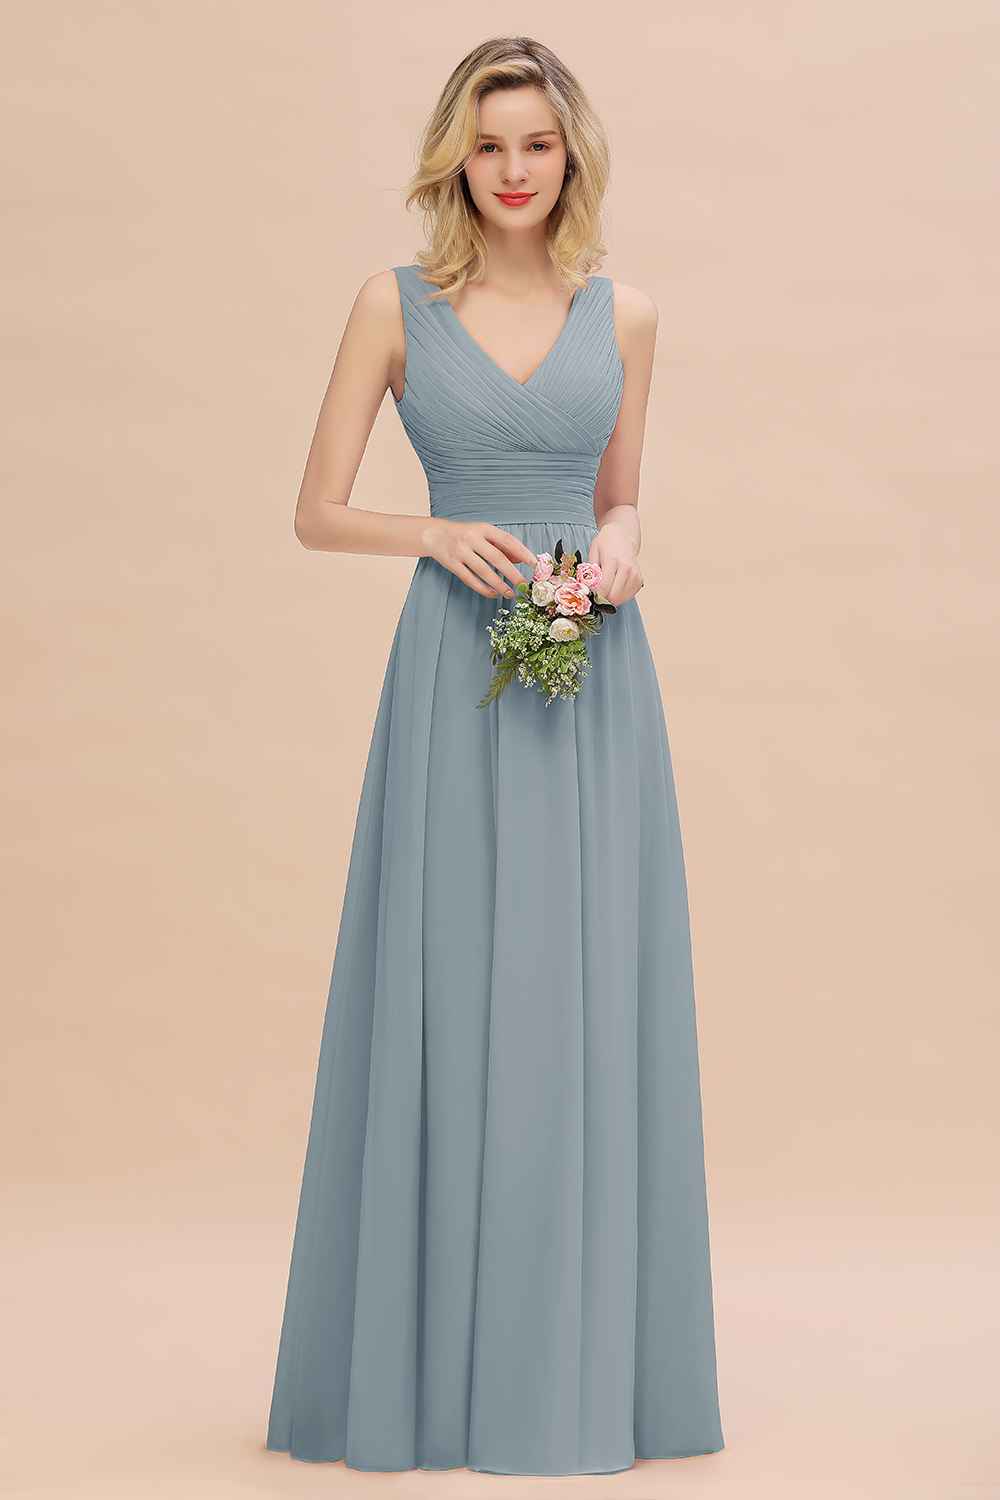 BMbridal Elegant V-Neck Dusty Rose Chiffon Bridesmaid Dress with Ruffle